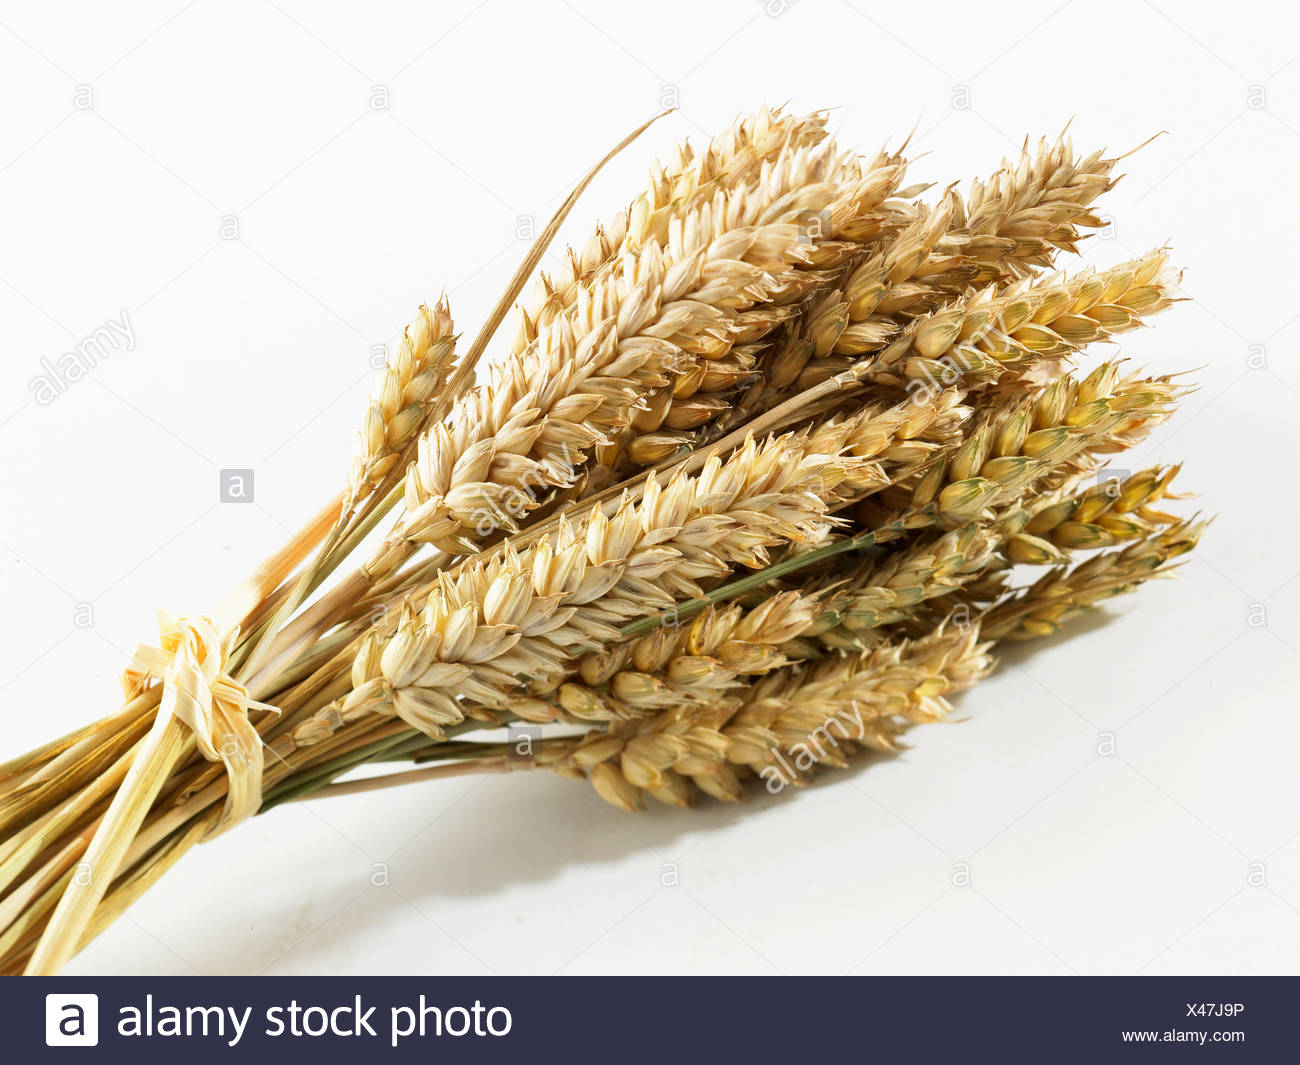 Ears of wheat - Stock Image